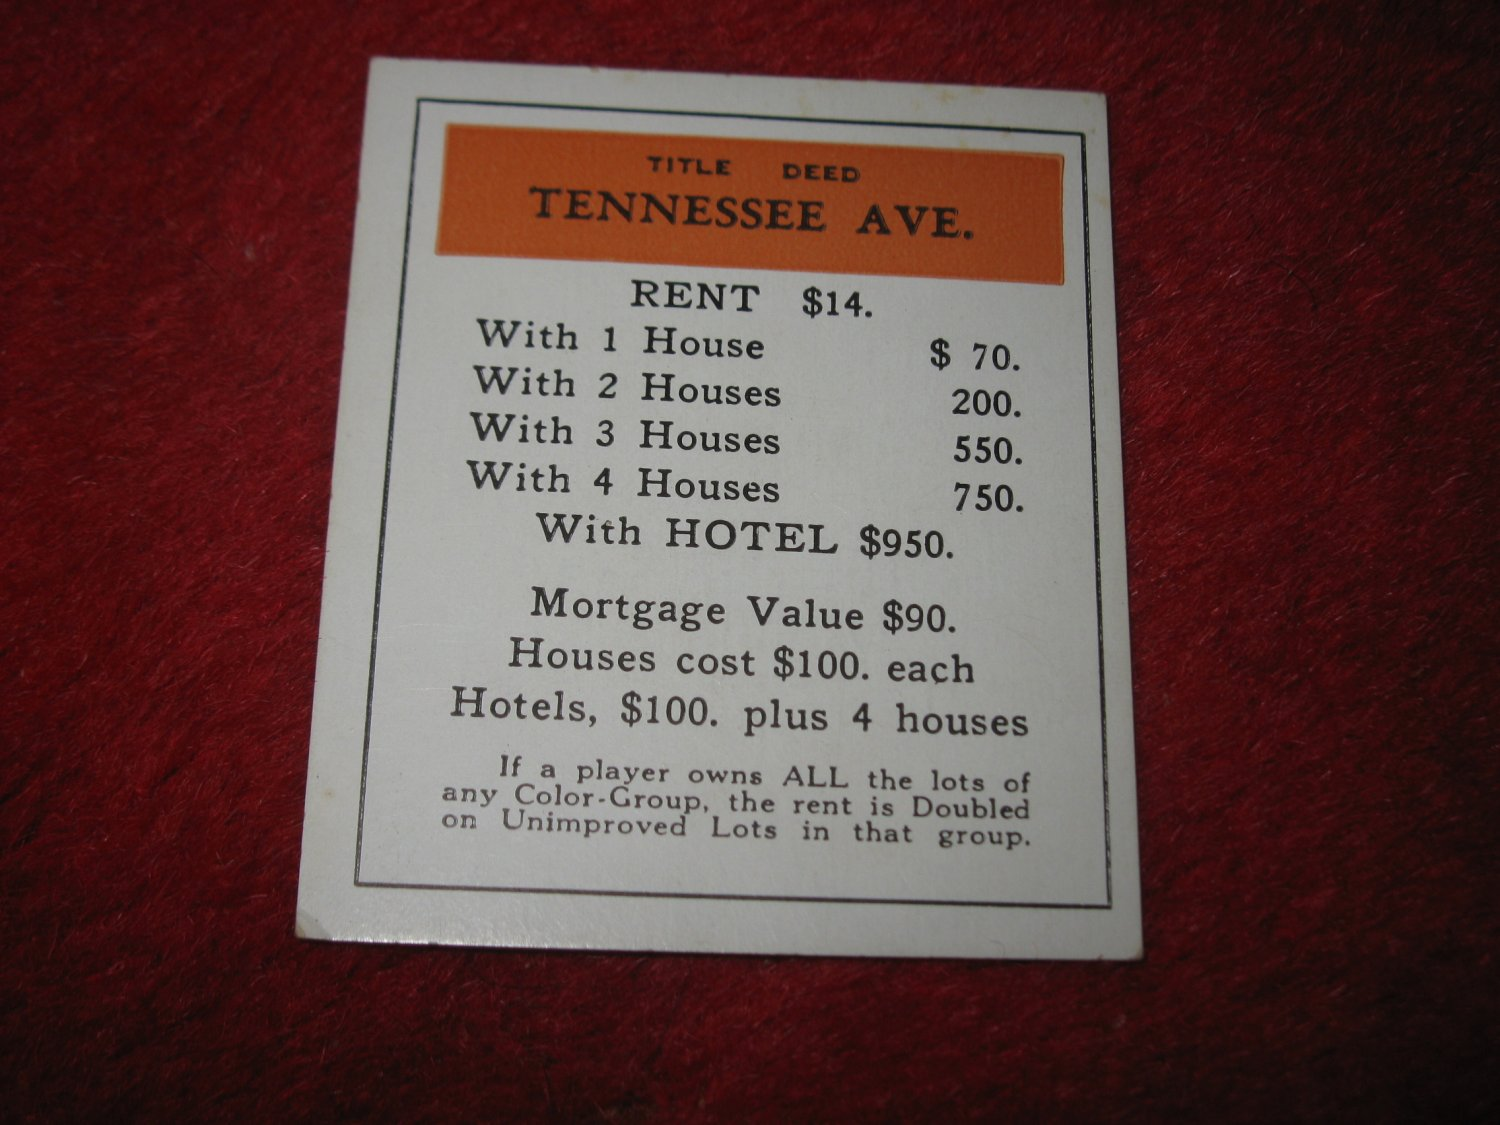 1952 Monopoly Popular Ed. Board Game Piece: Tennessee Ave - Title Deed